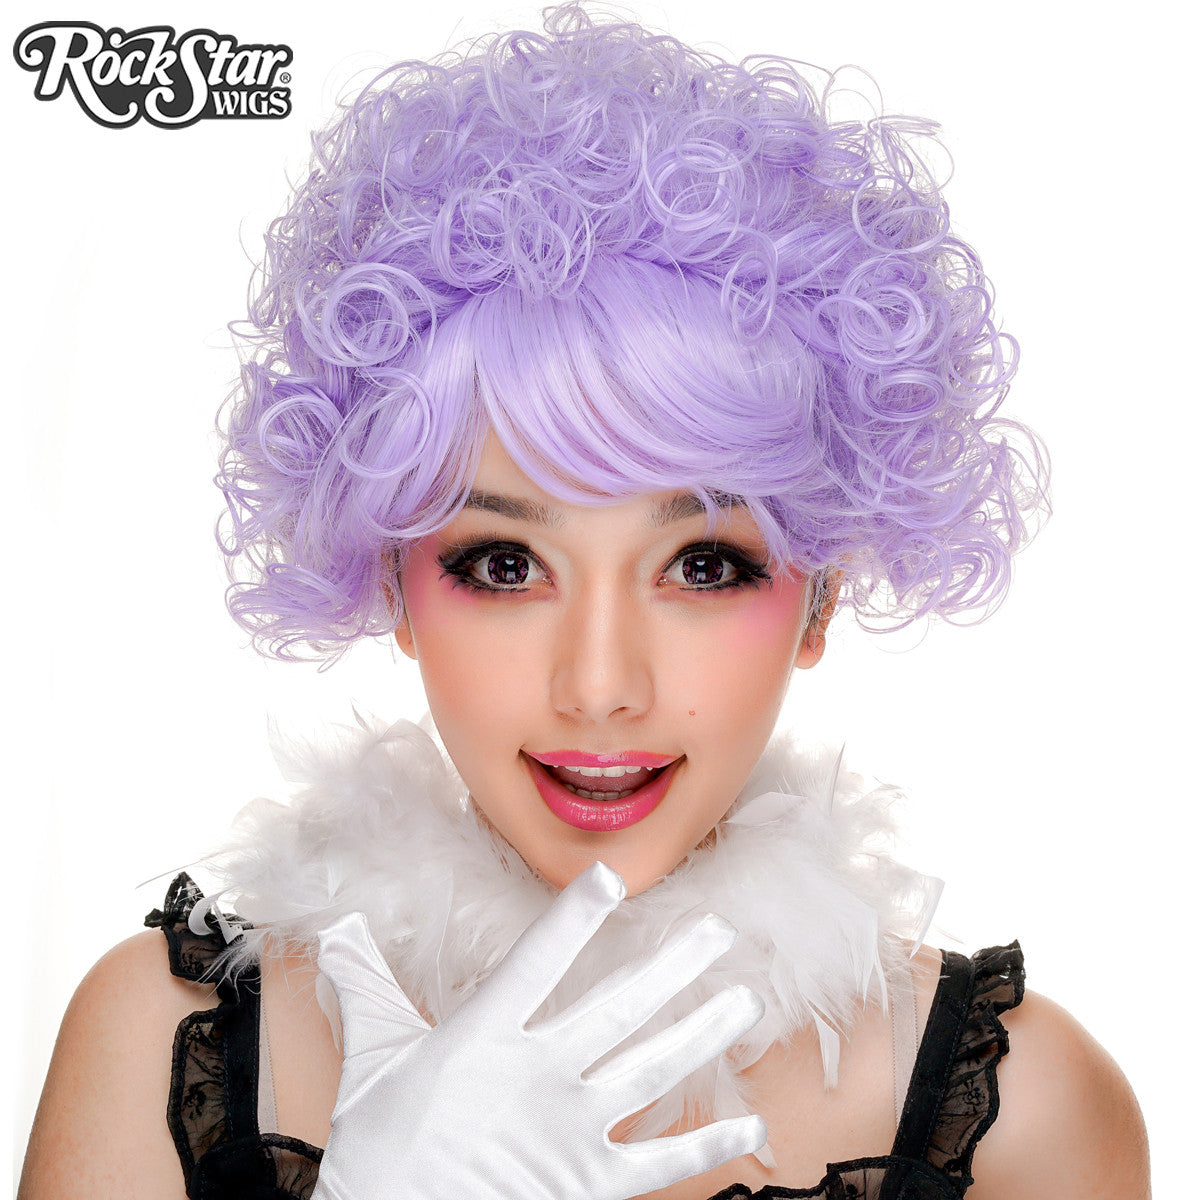 Cosplay Wigs USA™ Inspired By Character <br> The Hunger Games - Effie Trinket Style -00253